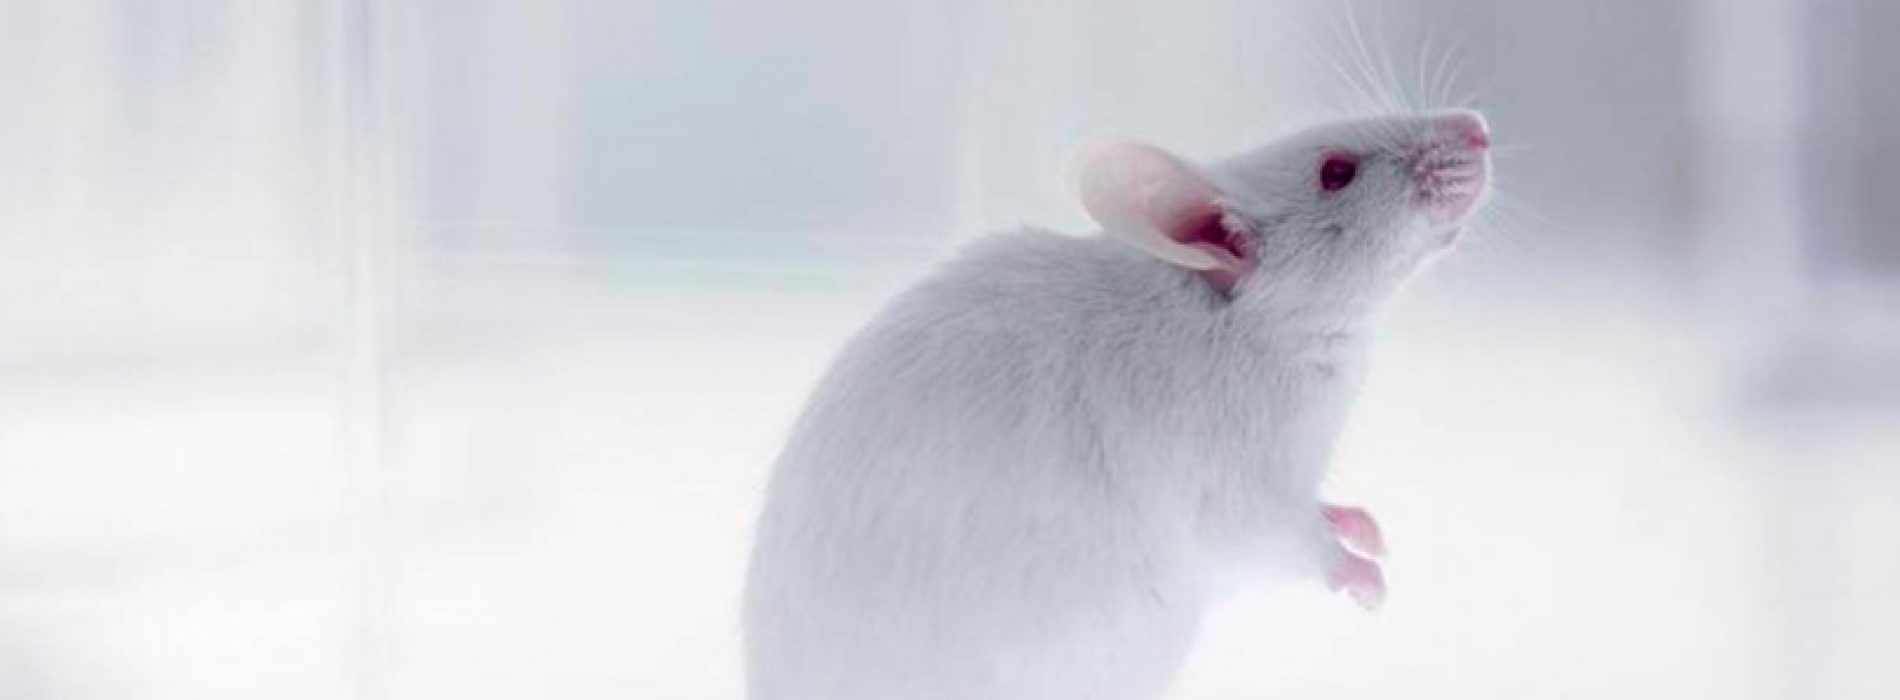 CRISPR/Cas9 used to control genetic inheritance in mice